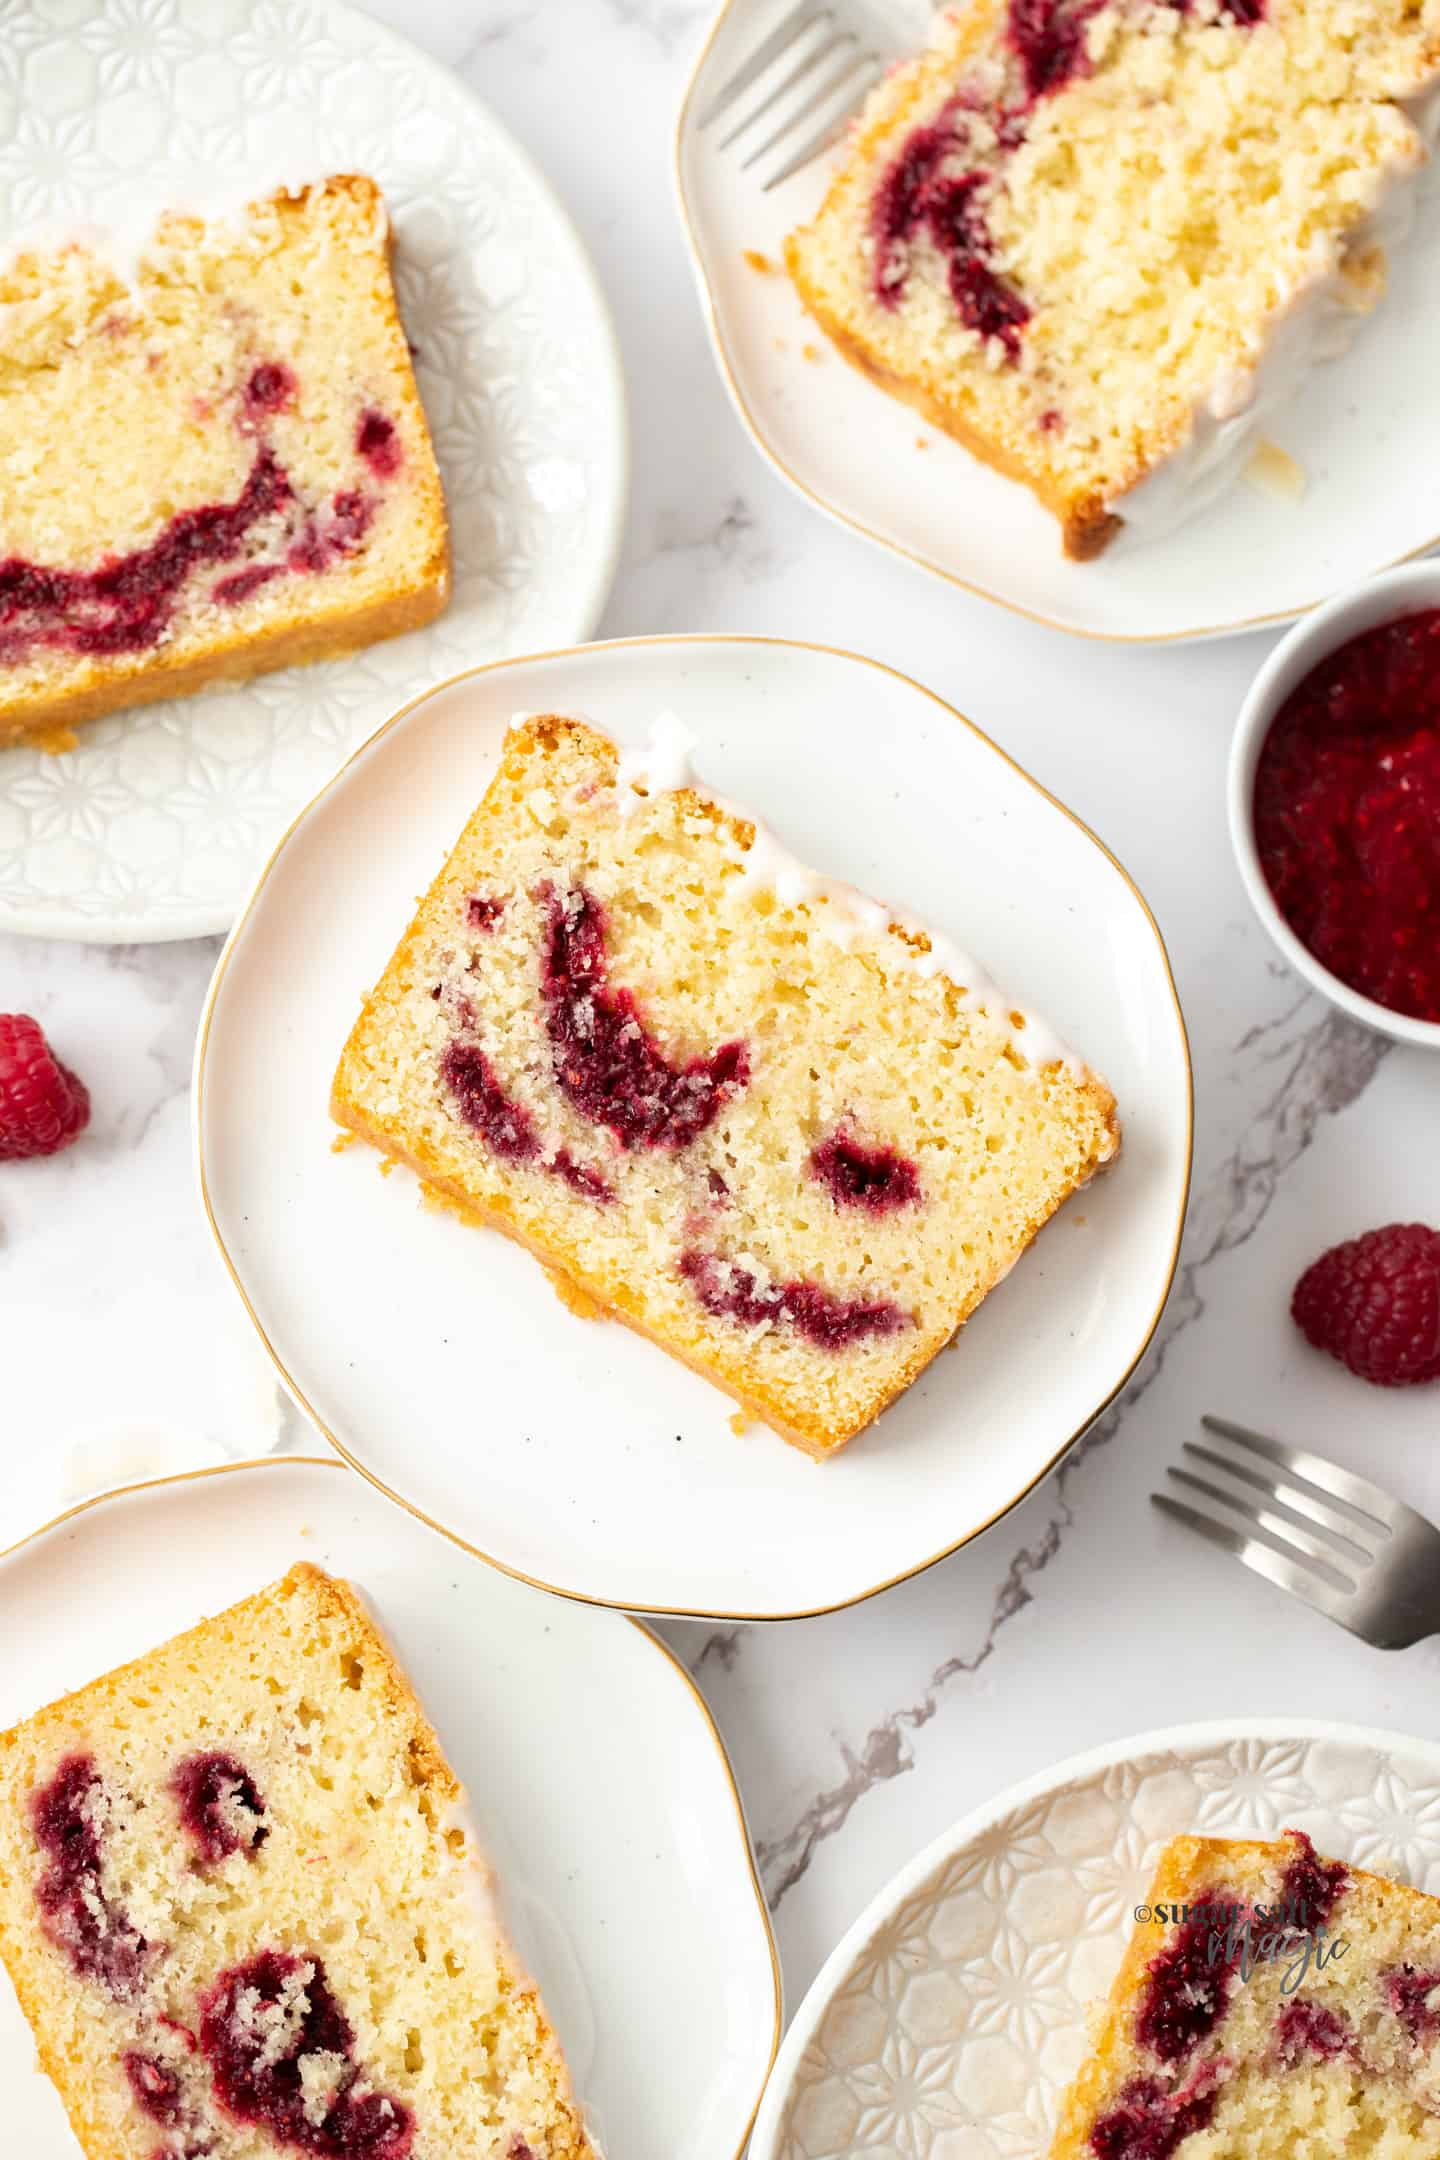 Top down view of 5 slices of cake on white plates with raspberry compote next to it..